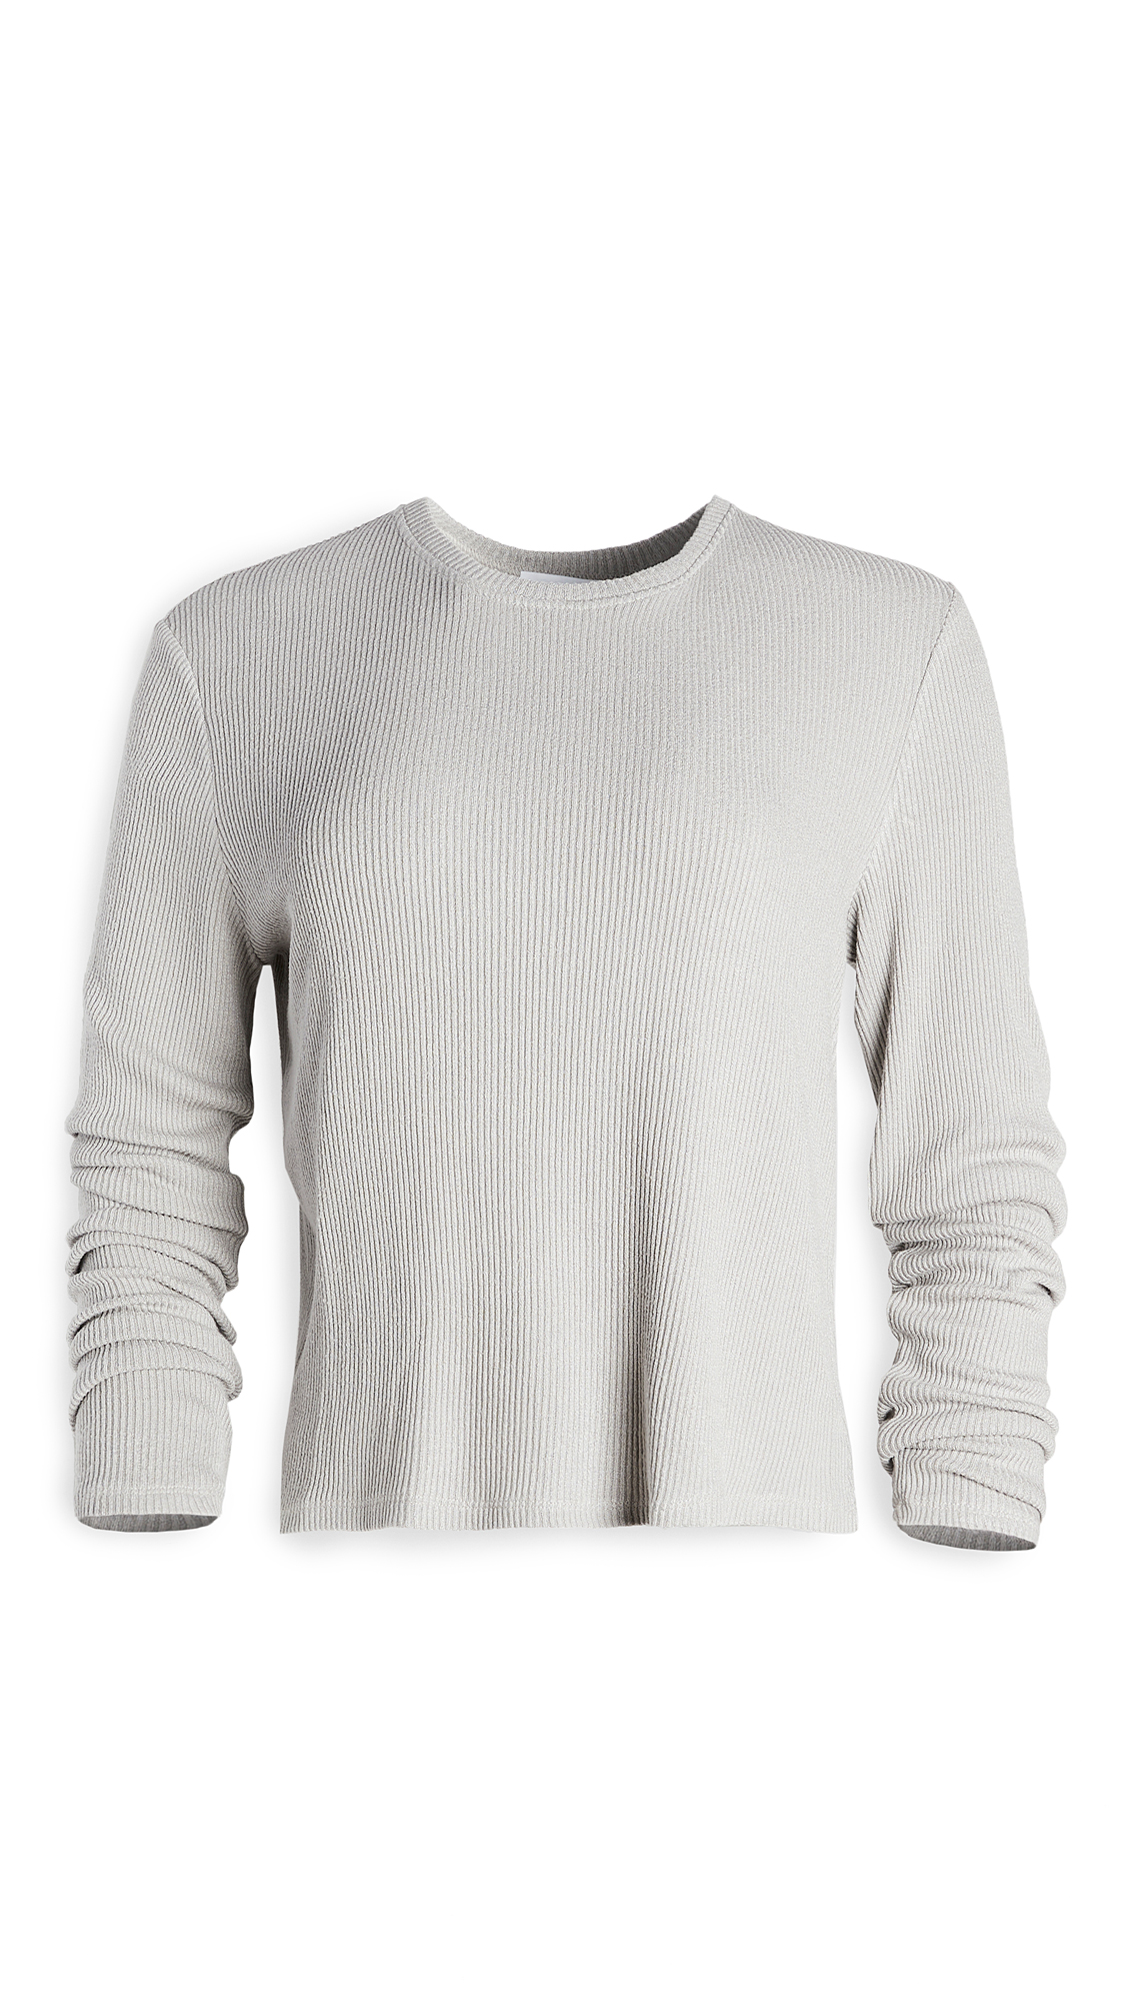 Sablyn Ryder Cotton Ribbed Tee